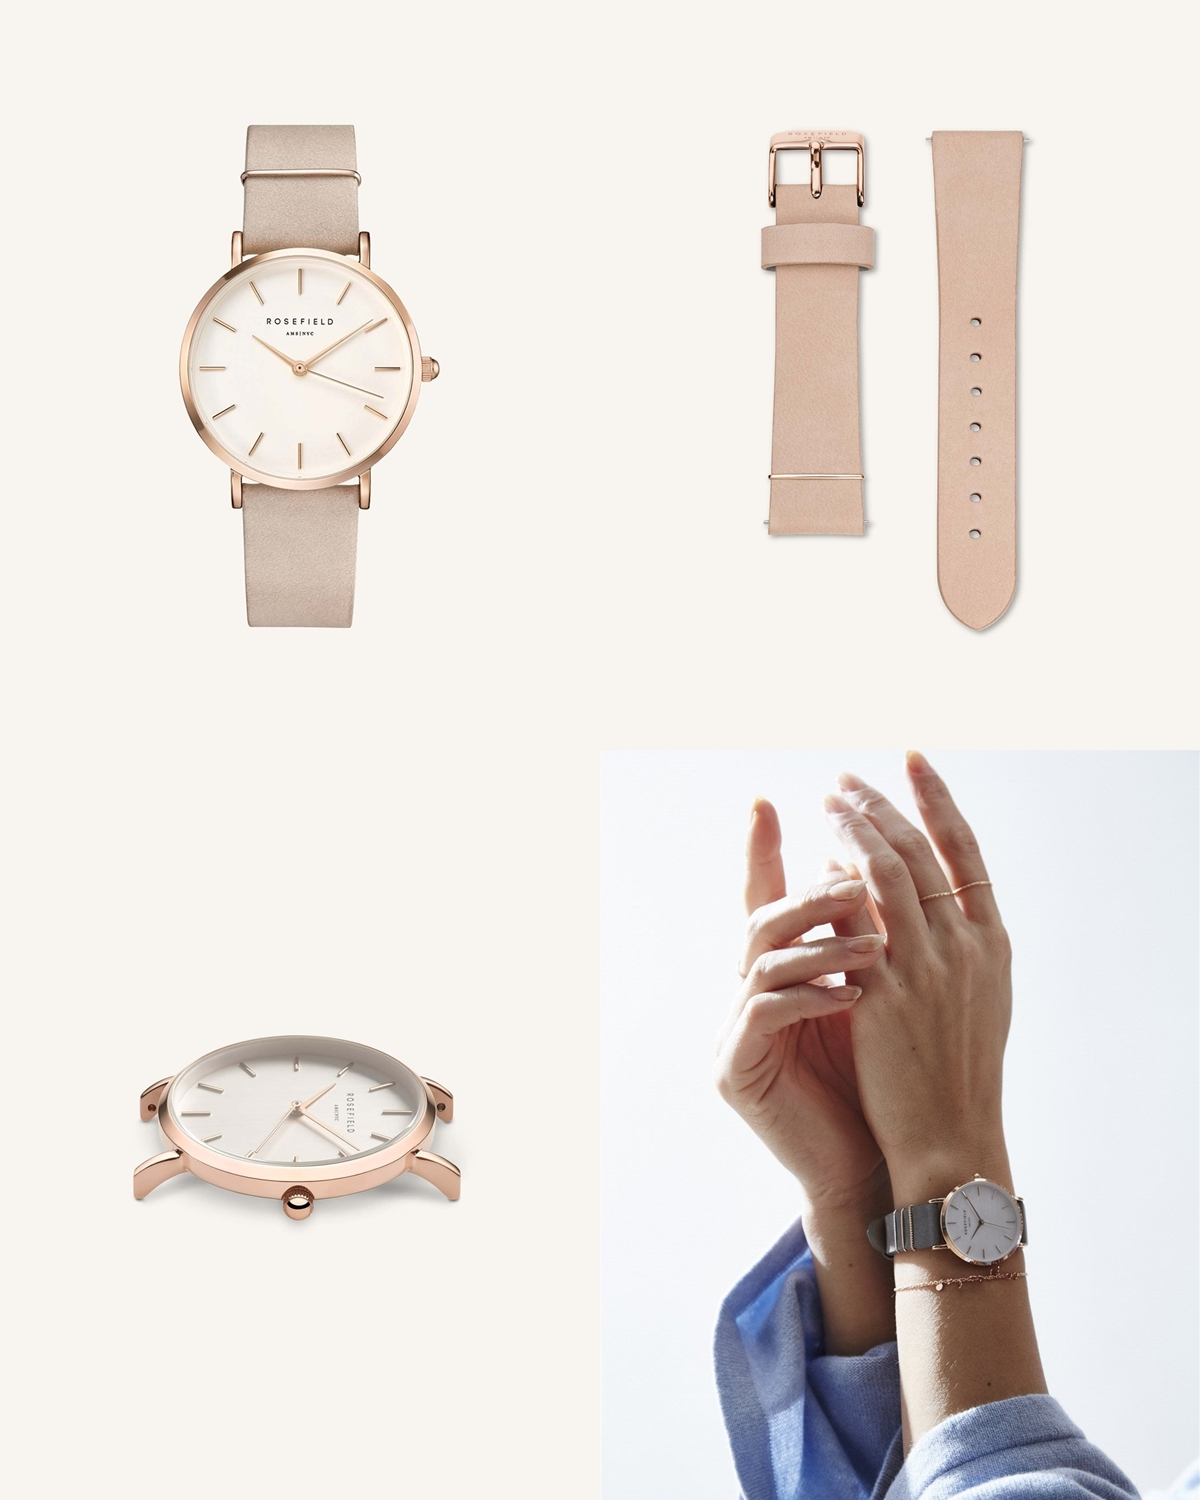 ROSEFIELD ローズフィールド The West Village Soft Pink Rose gold